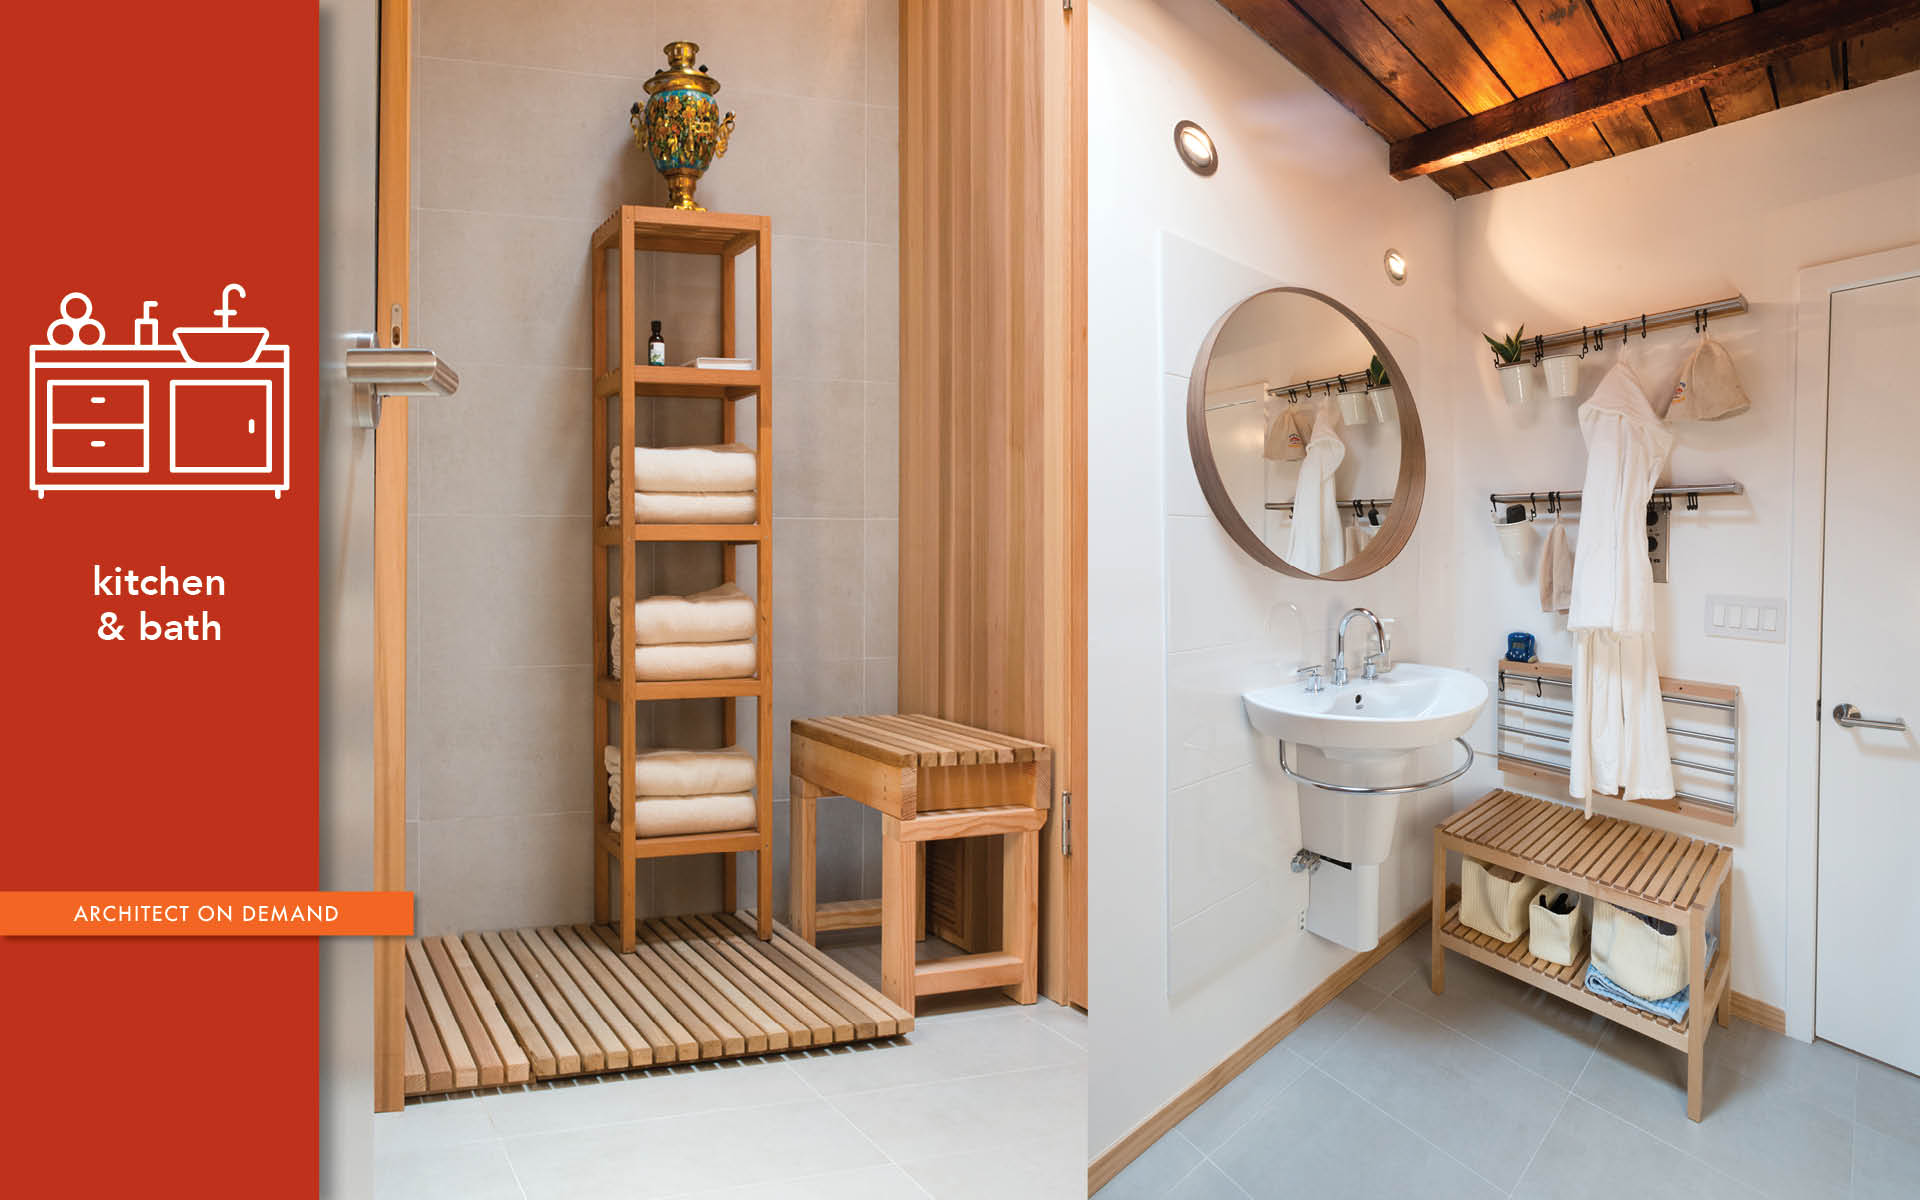 sauna, bathroom, storage, relaxation, architect on demand, advice without strings